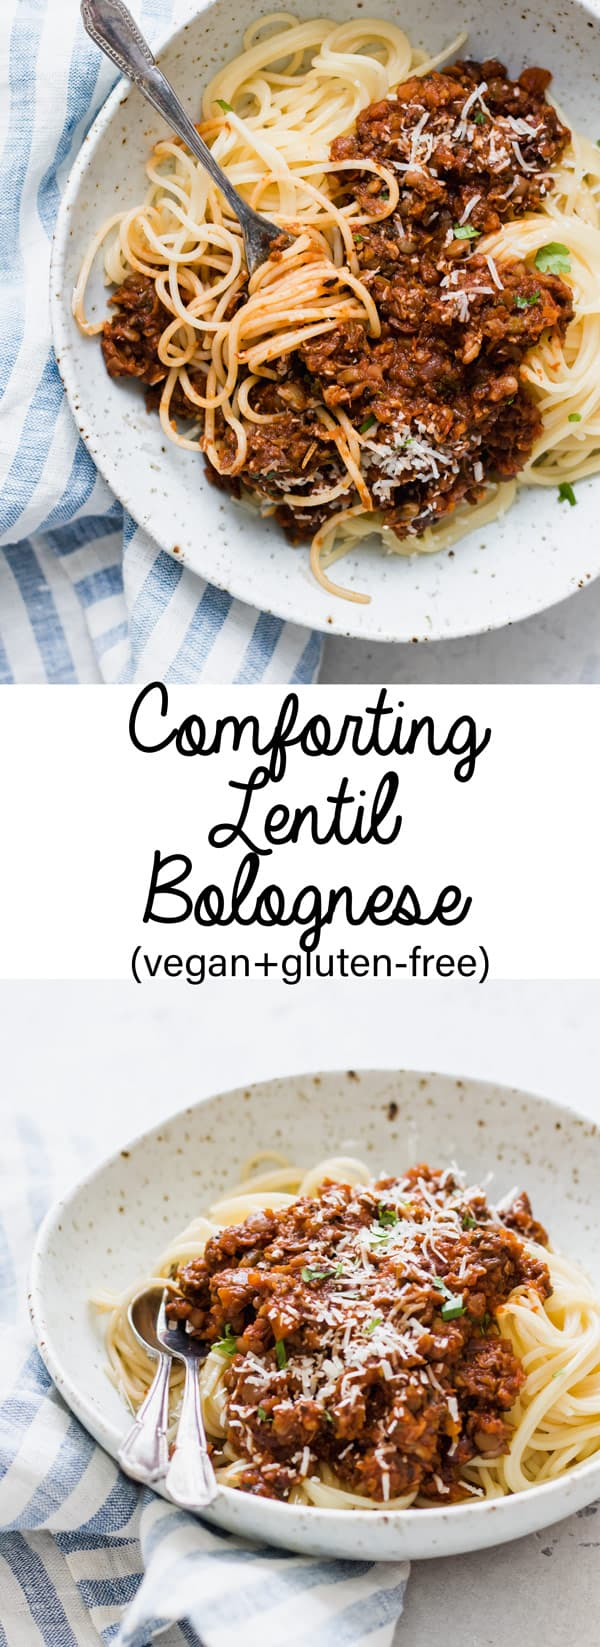 This comforting lentil bolognese is a healthy vegan dish that everyone will love! It's high in protein, and can be served on any pasta you like!